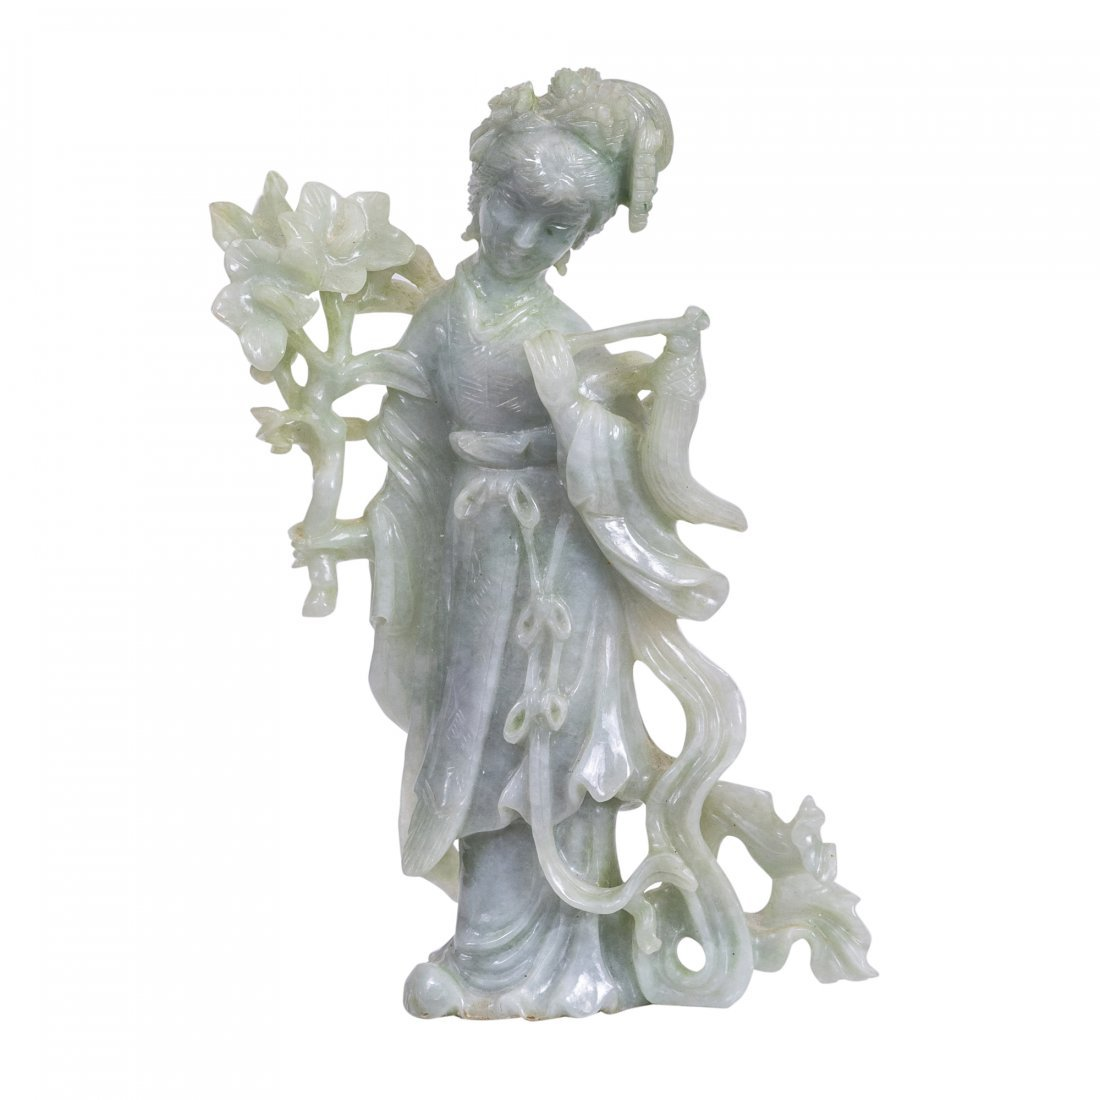 A Chinese Carved Jadeite Figure of Quanyin